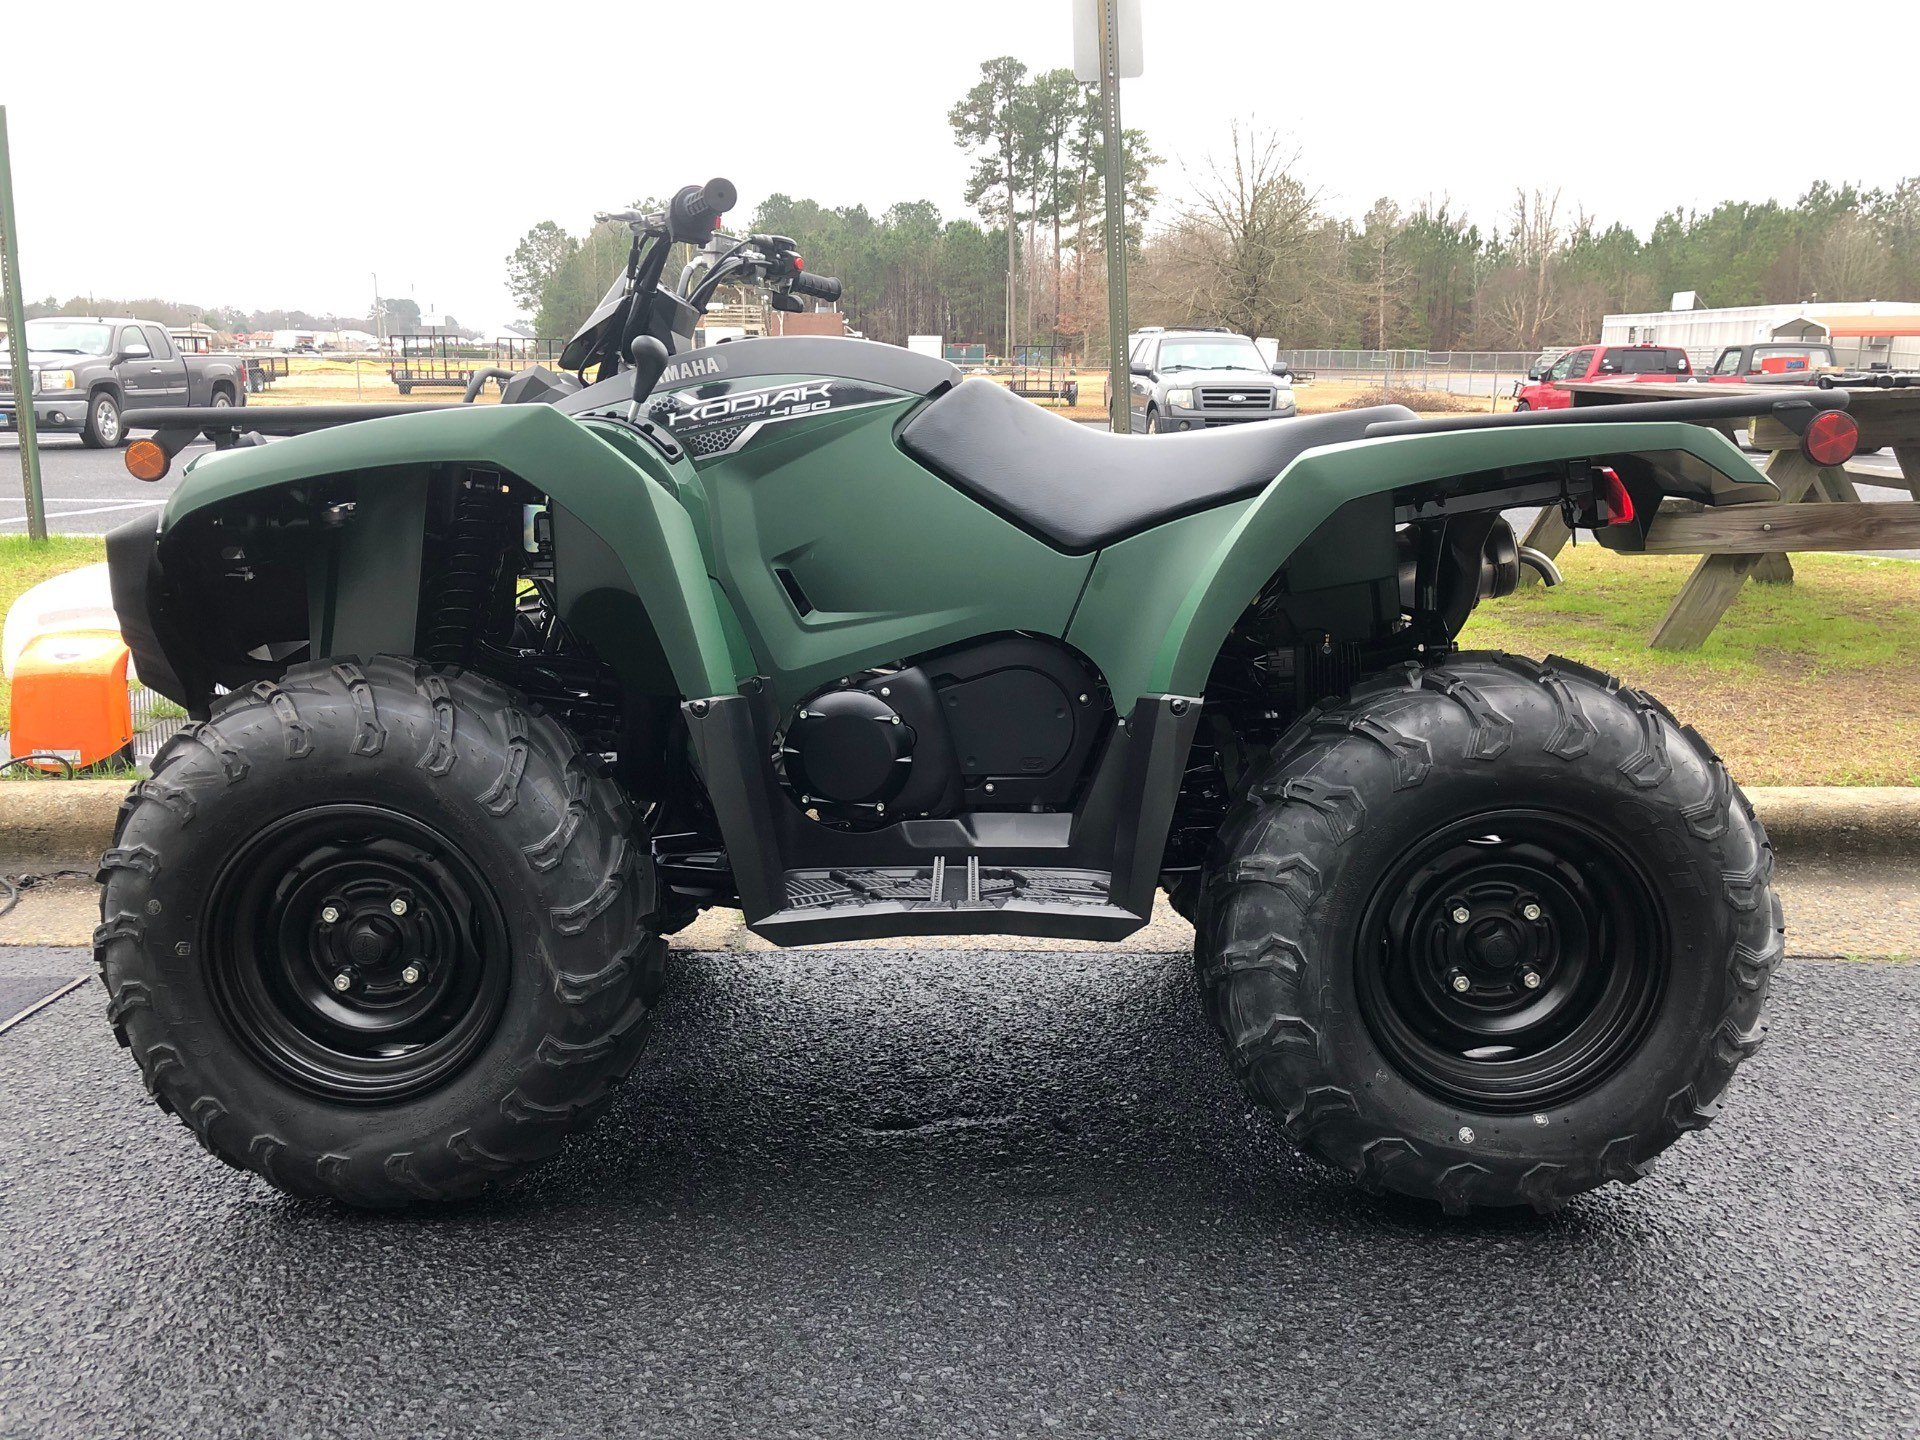 2019 Yamaha Kodiak 450 in Greenville, North Carolina - Photo 9